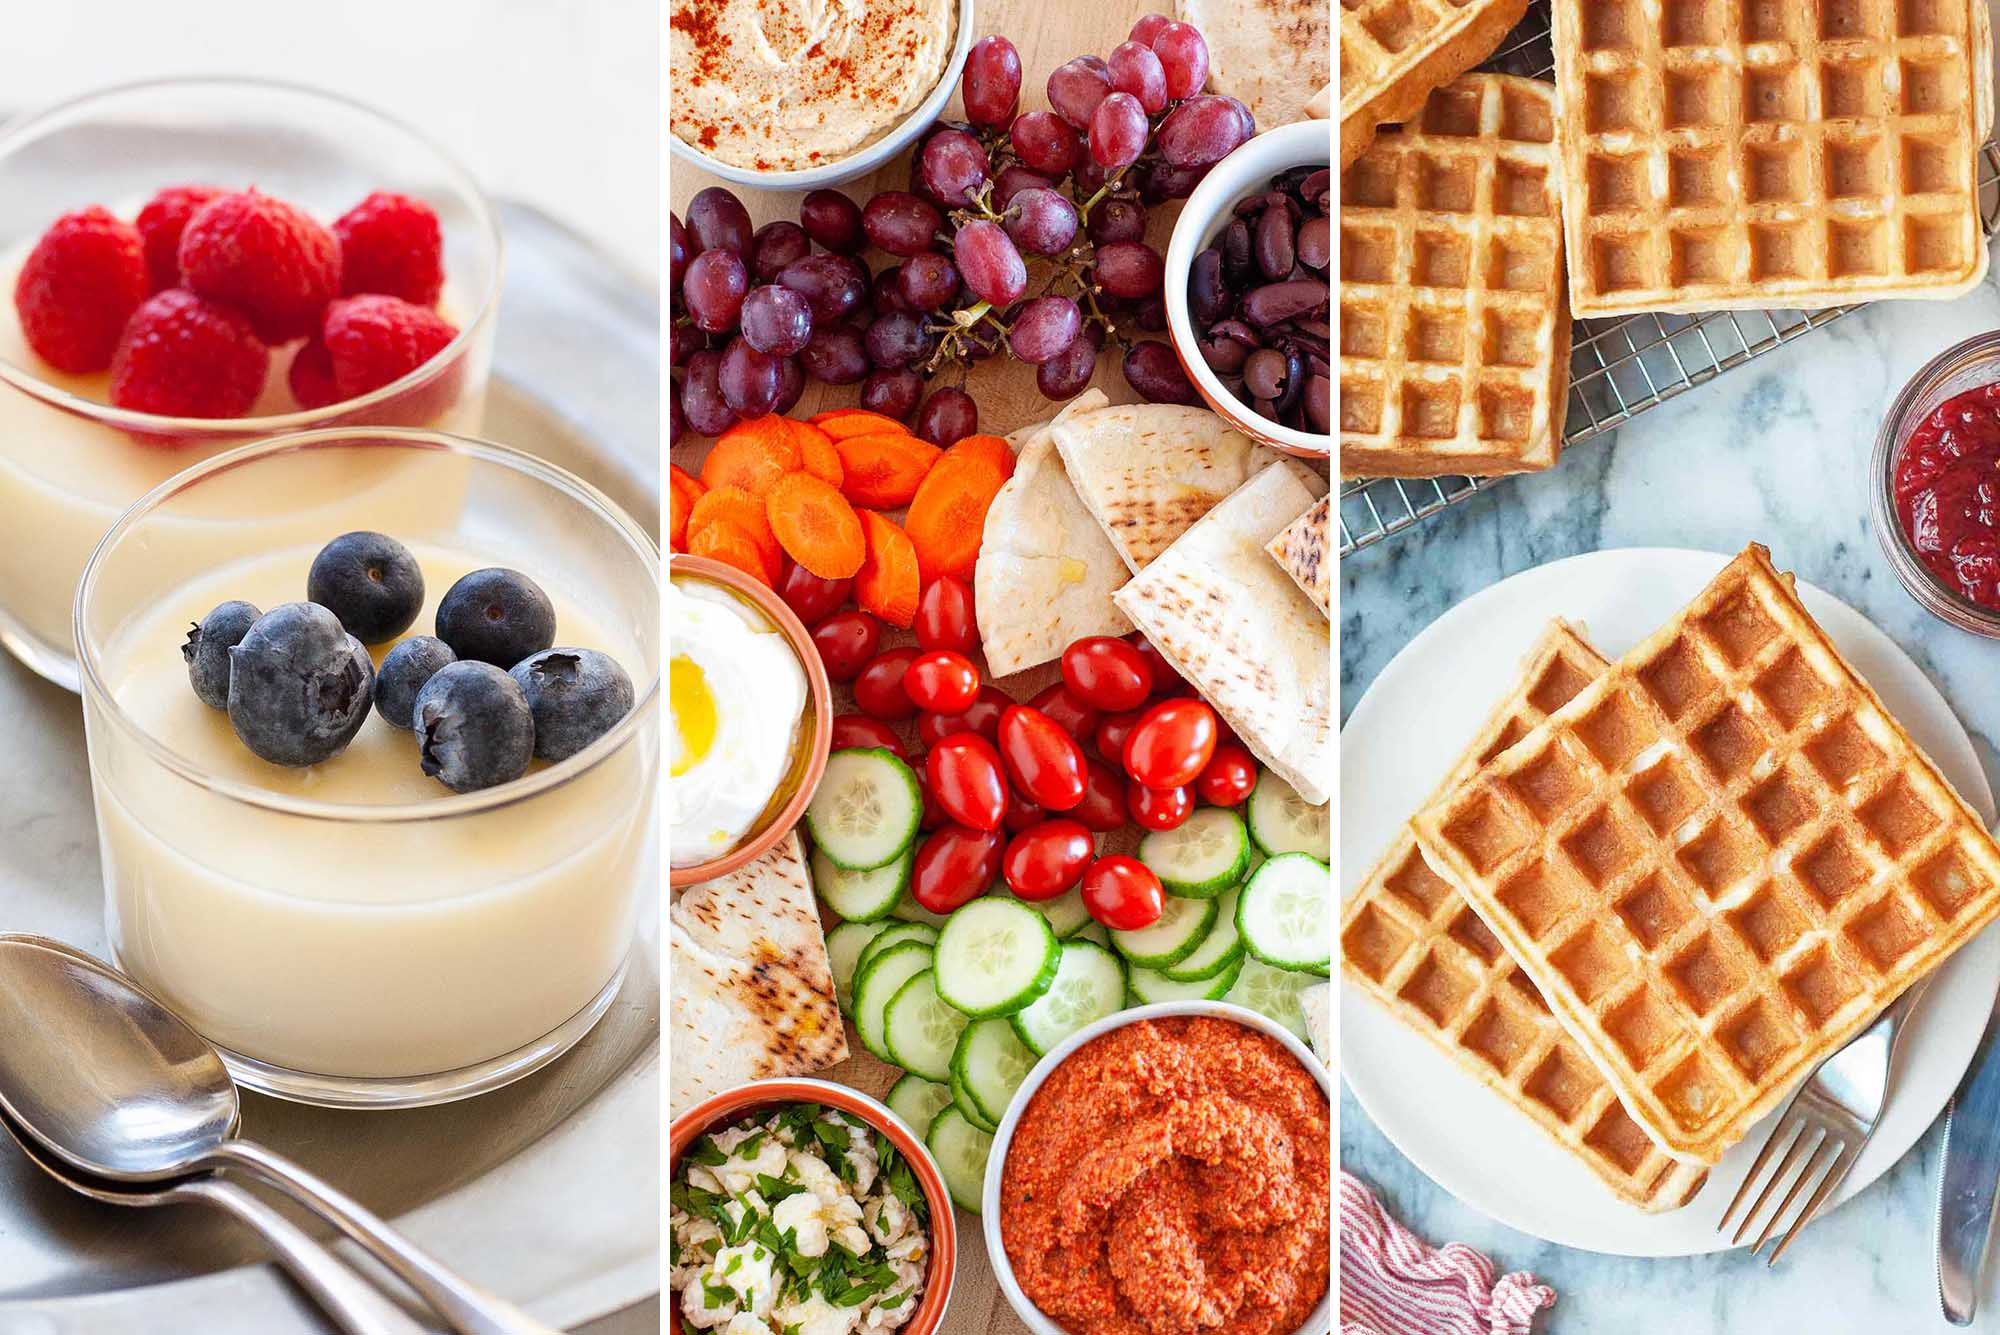 Three images side by side. From left to right: Lemon Pudding with berries on top, Mezze Platter with vegetables, dips and pitas. Last are waffles on a plate.